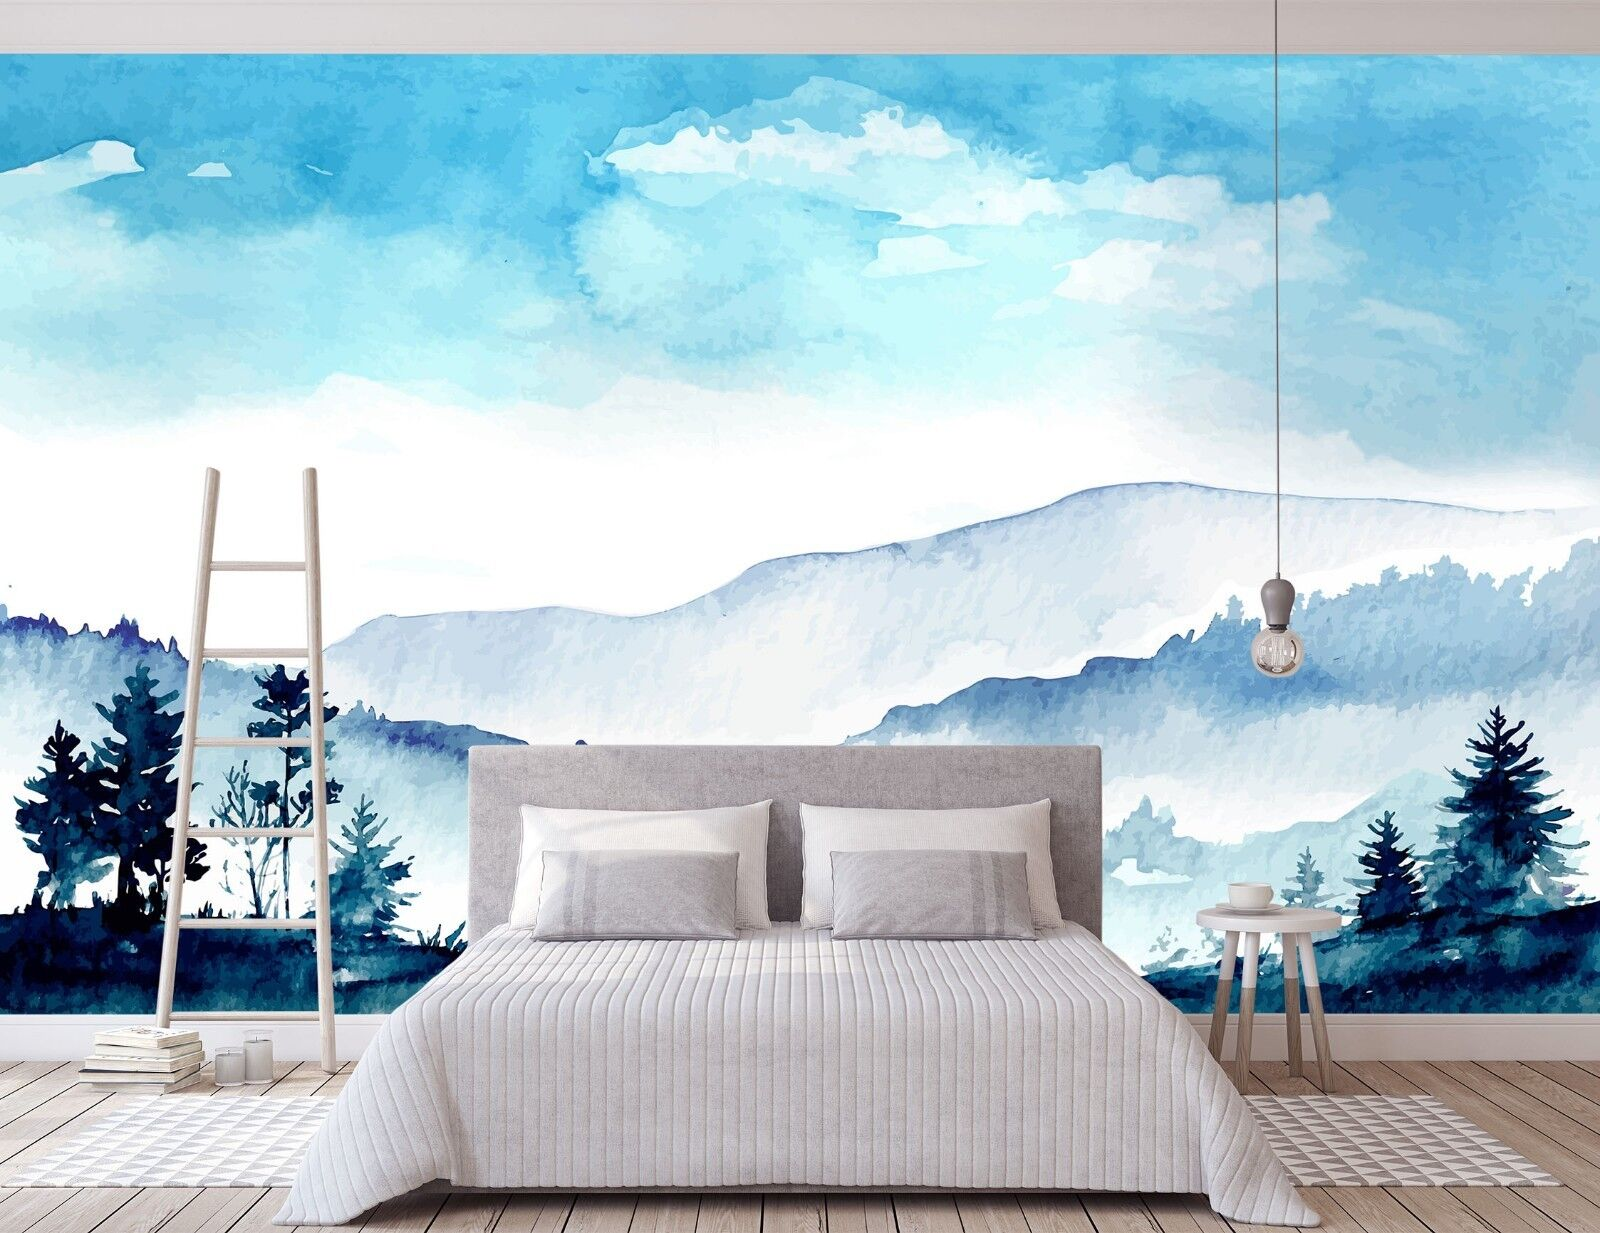 3D Blau Mountain 825 Wall Paper Print Wall Decal Deco Indoor Wall Murals US